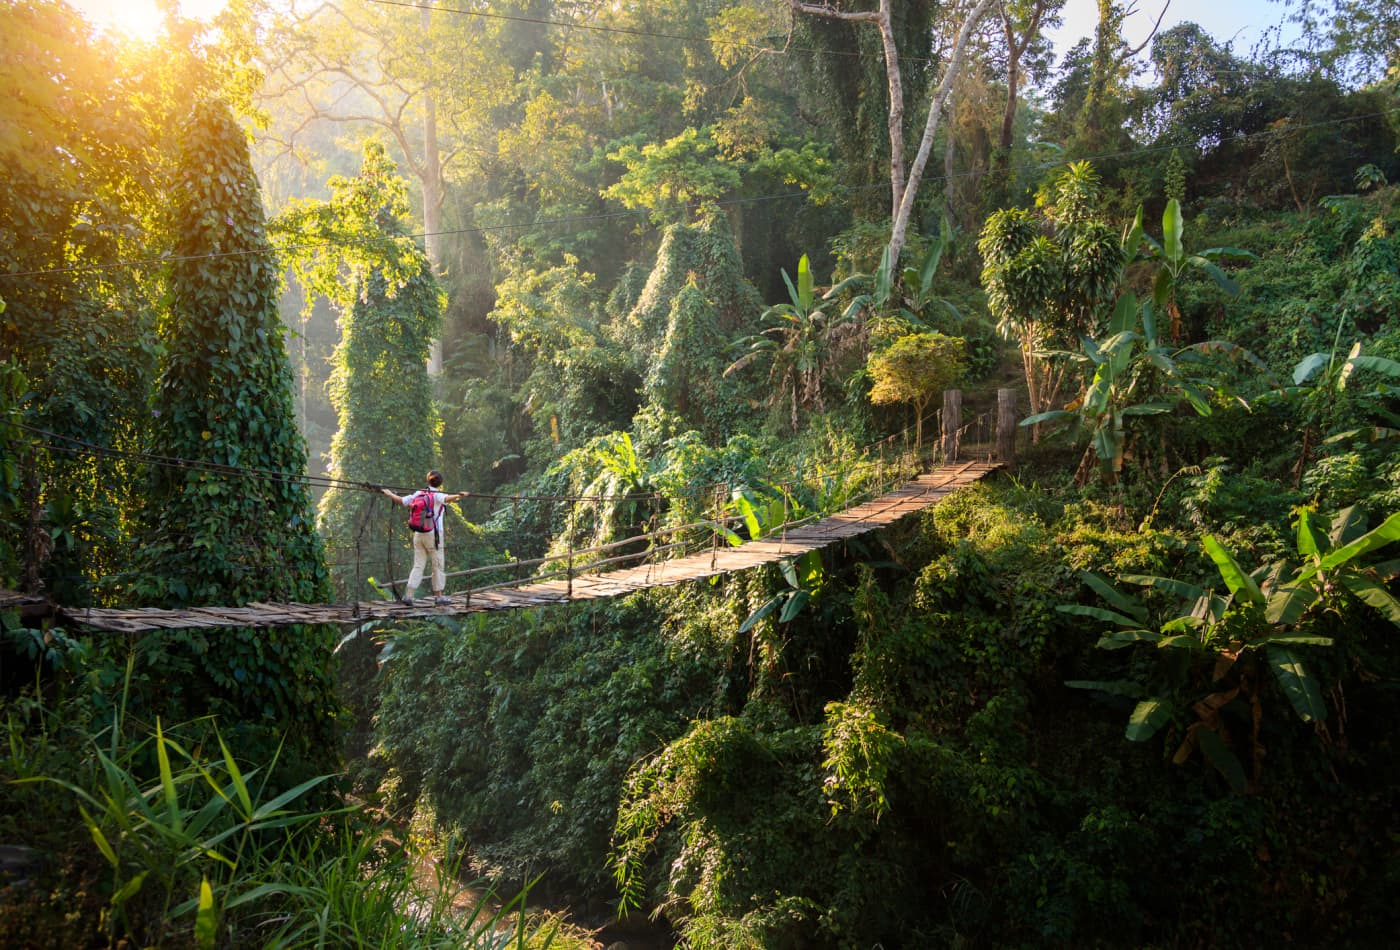 Travelers care deeply about sustainability – until it inconveniences them